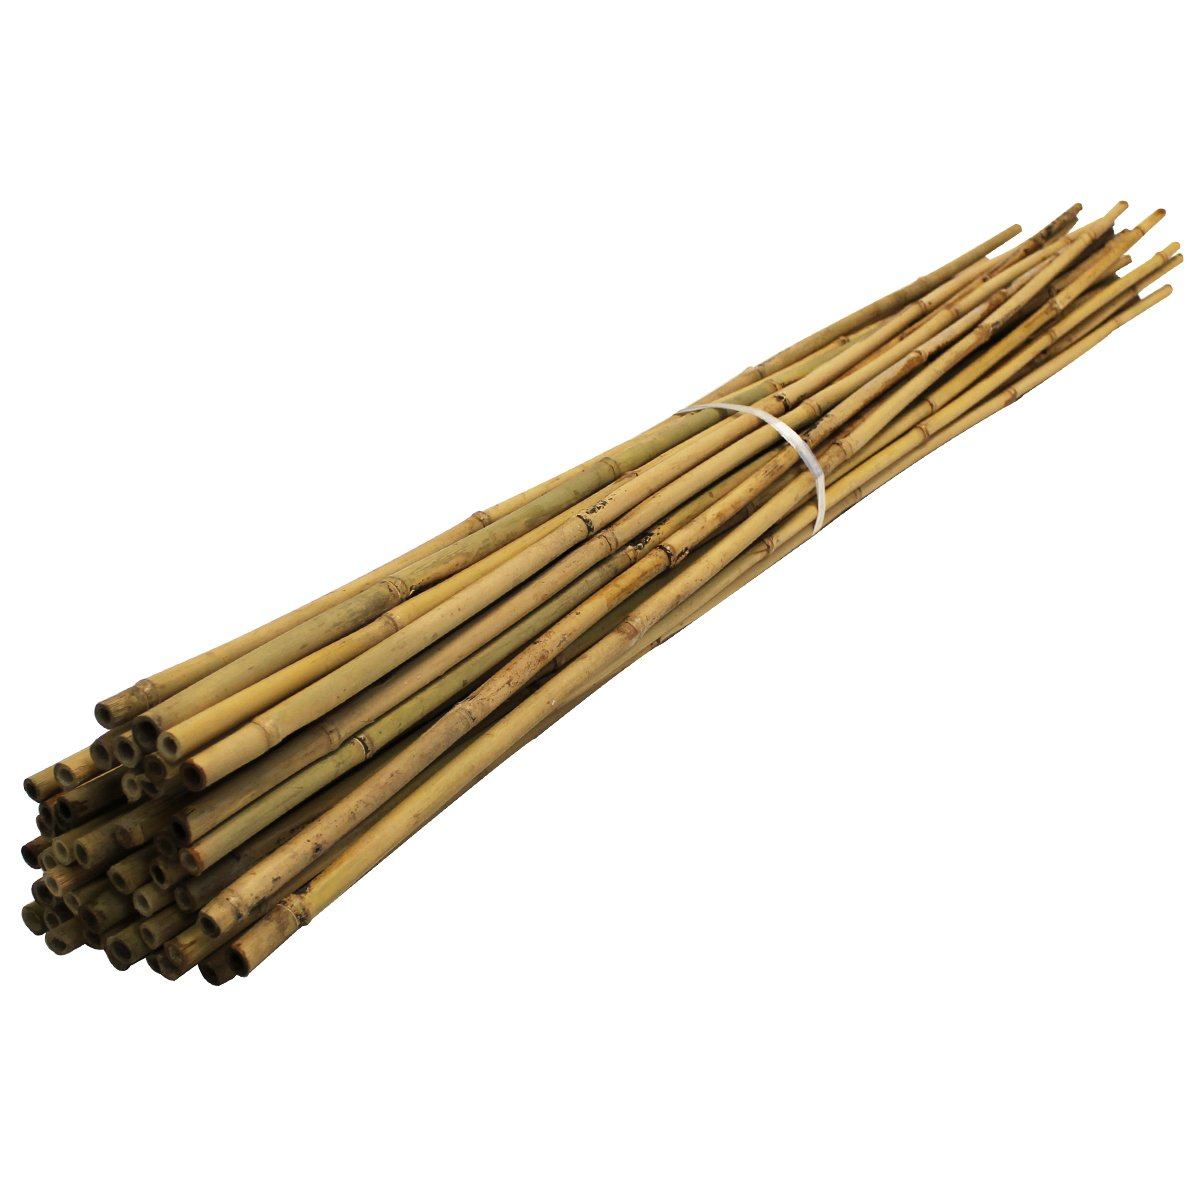 90cm Bamboo (50 pack) Garden Canes, 3ft, 8-10mm dia./thick. Plant Support poles Suregreen